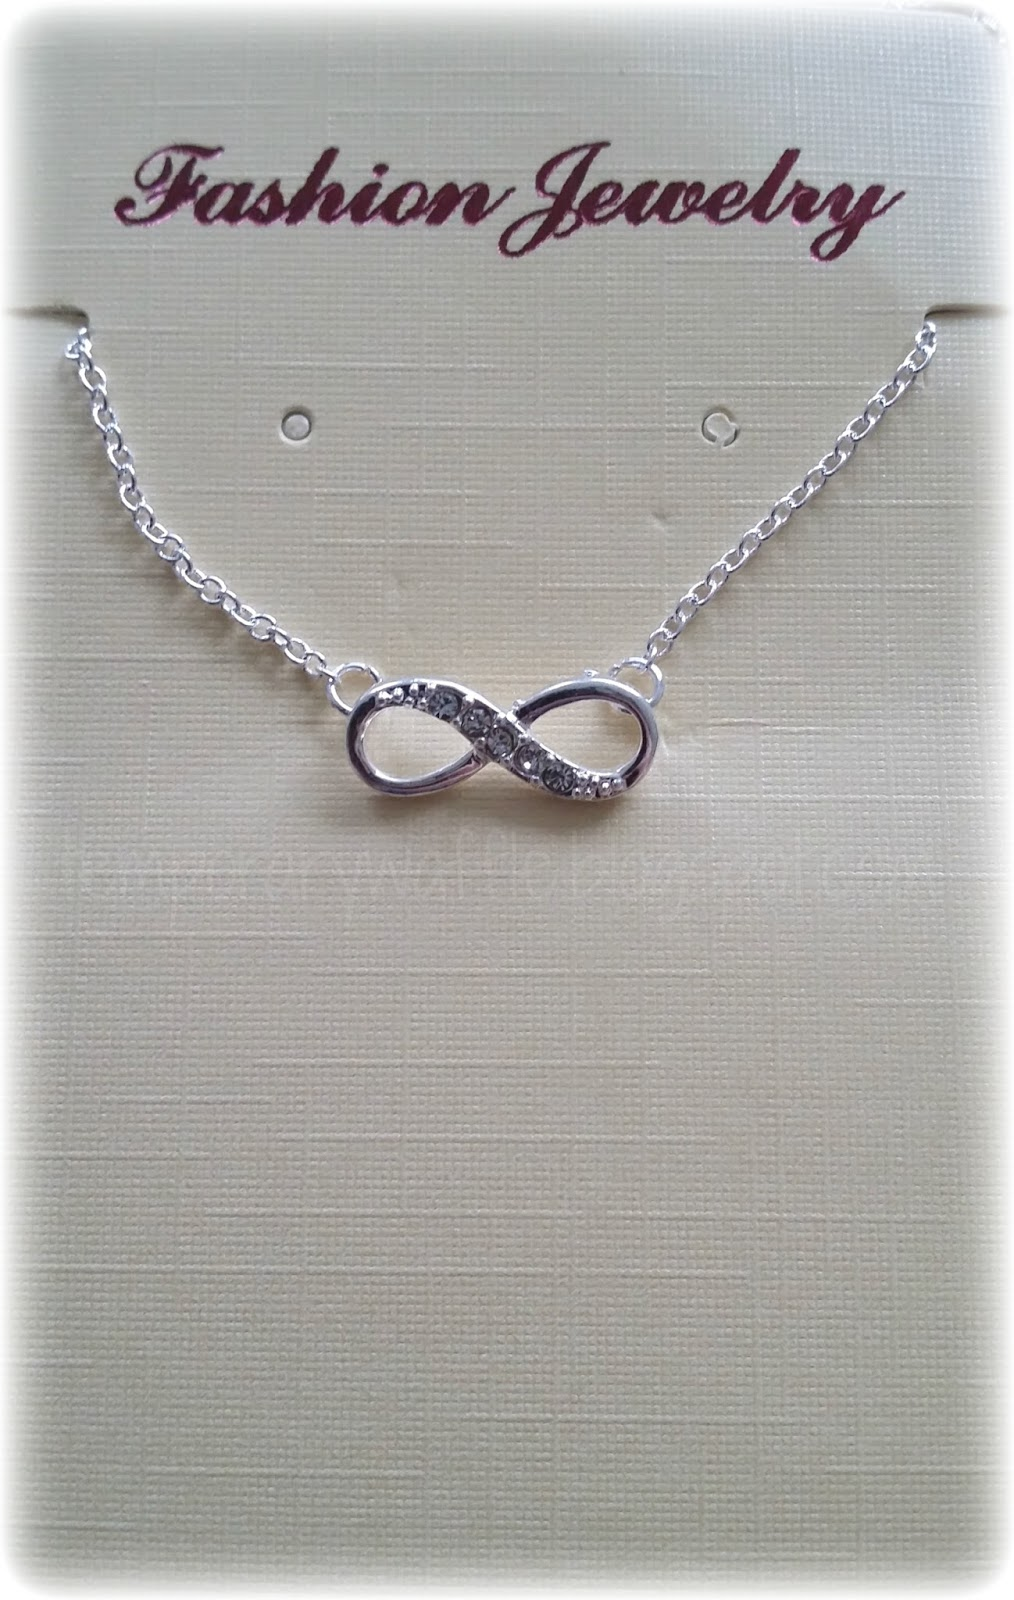 Temporary waffle beautiful cz infinity necklace the cz infinity necklace is a beautiful accessory for any occasion it would make the perfect gift for birthdays graduation anniversaries as a mothers aloadofball Gallery